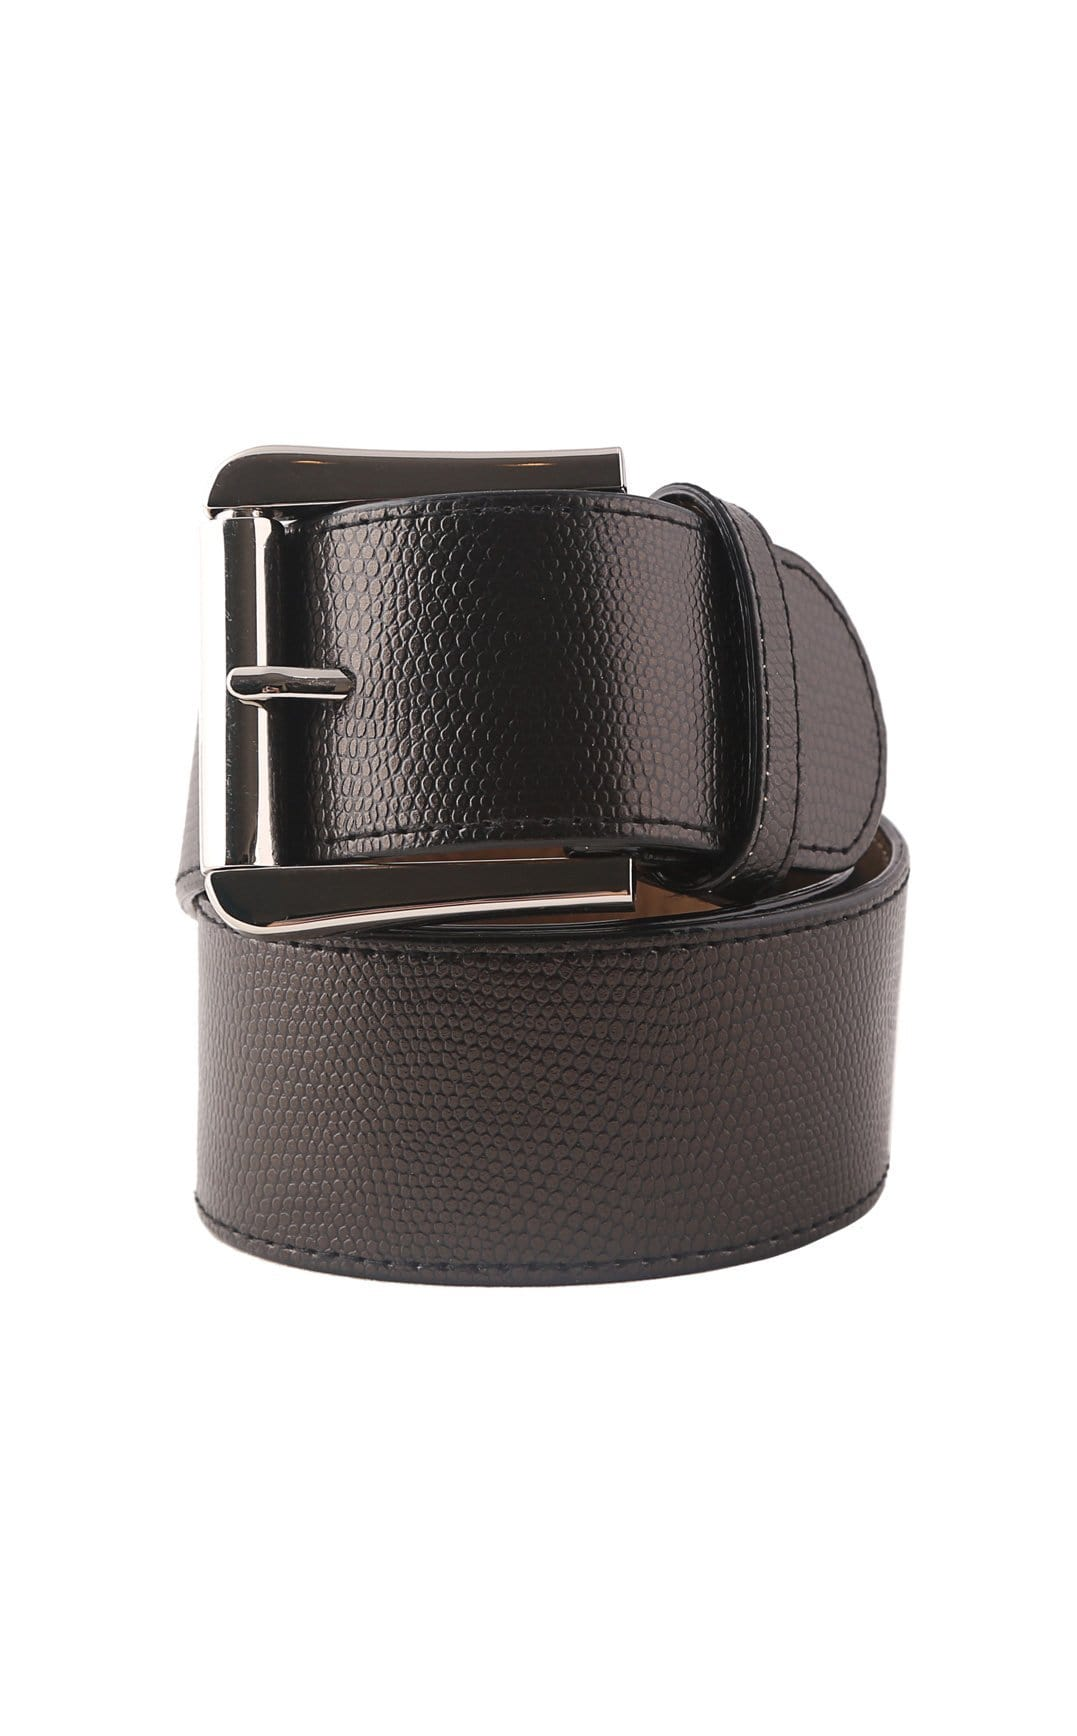 GhoDho Belt Medium Cruelty Free GhoDho Belt - Espresso equestrian team apparel online tack store mobile tack store custom farm apparel custom show stable clothing equestrian lifestyle horse show clothing riding clothes horses equestrian tack store